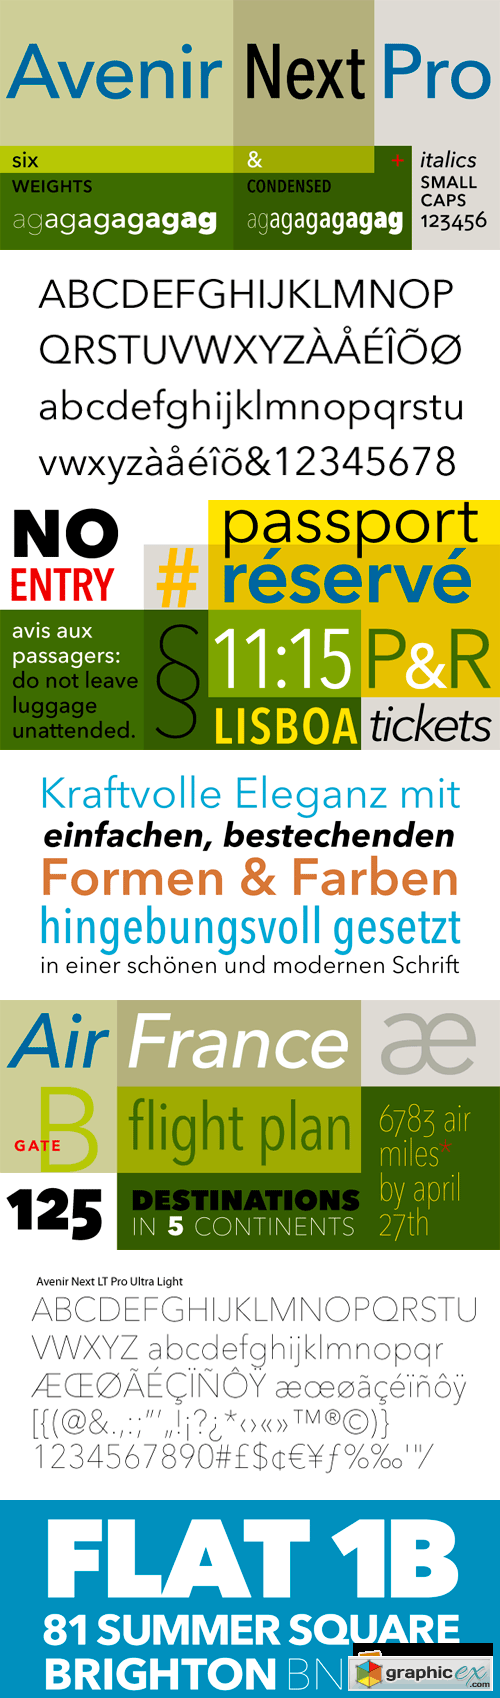 Avenir Next Pro Font Family - 17 Fonts for $999